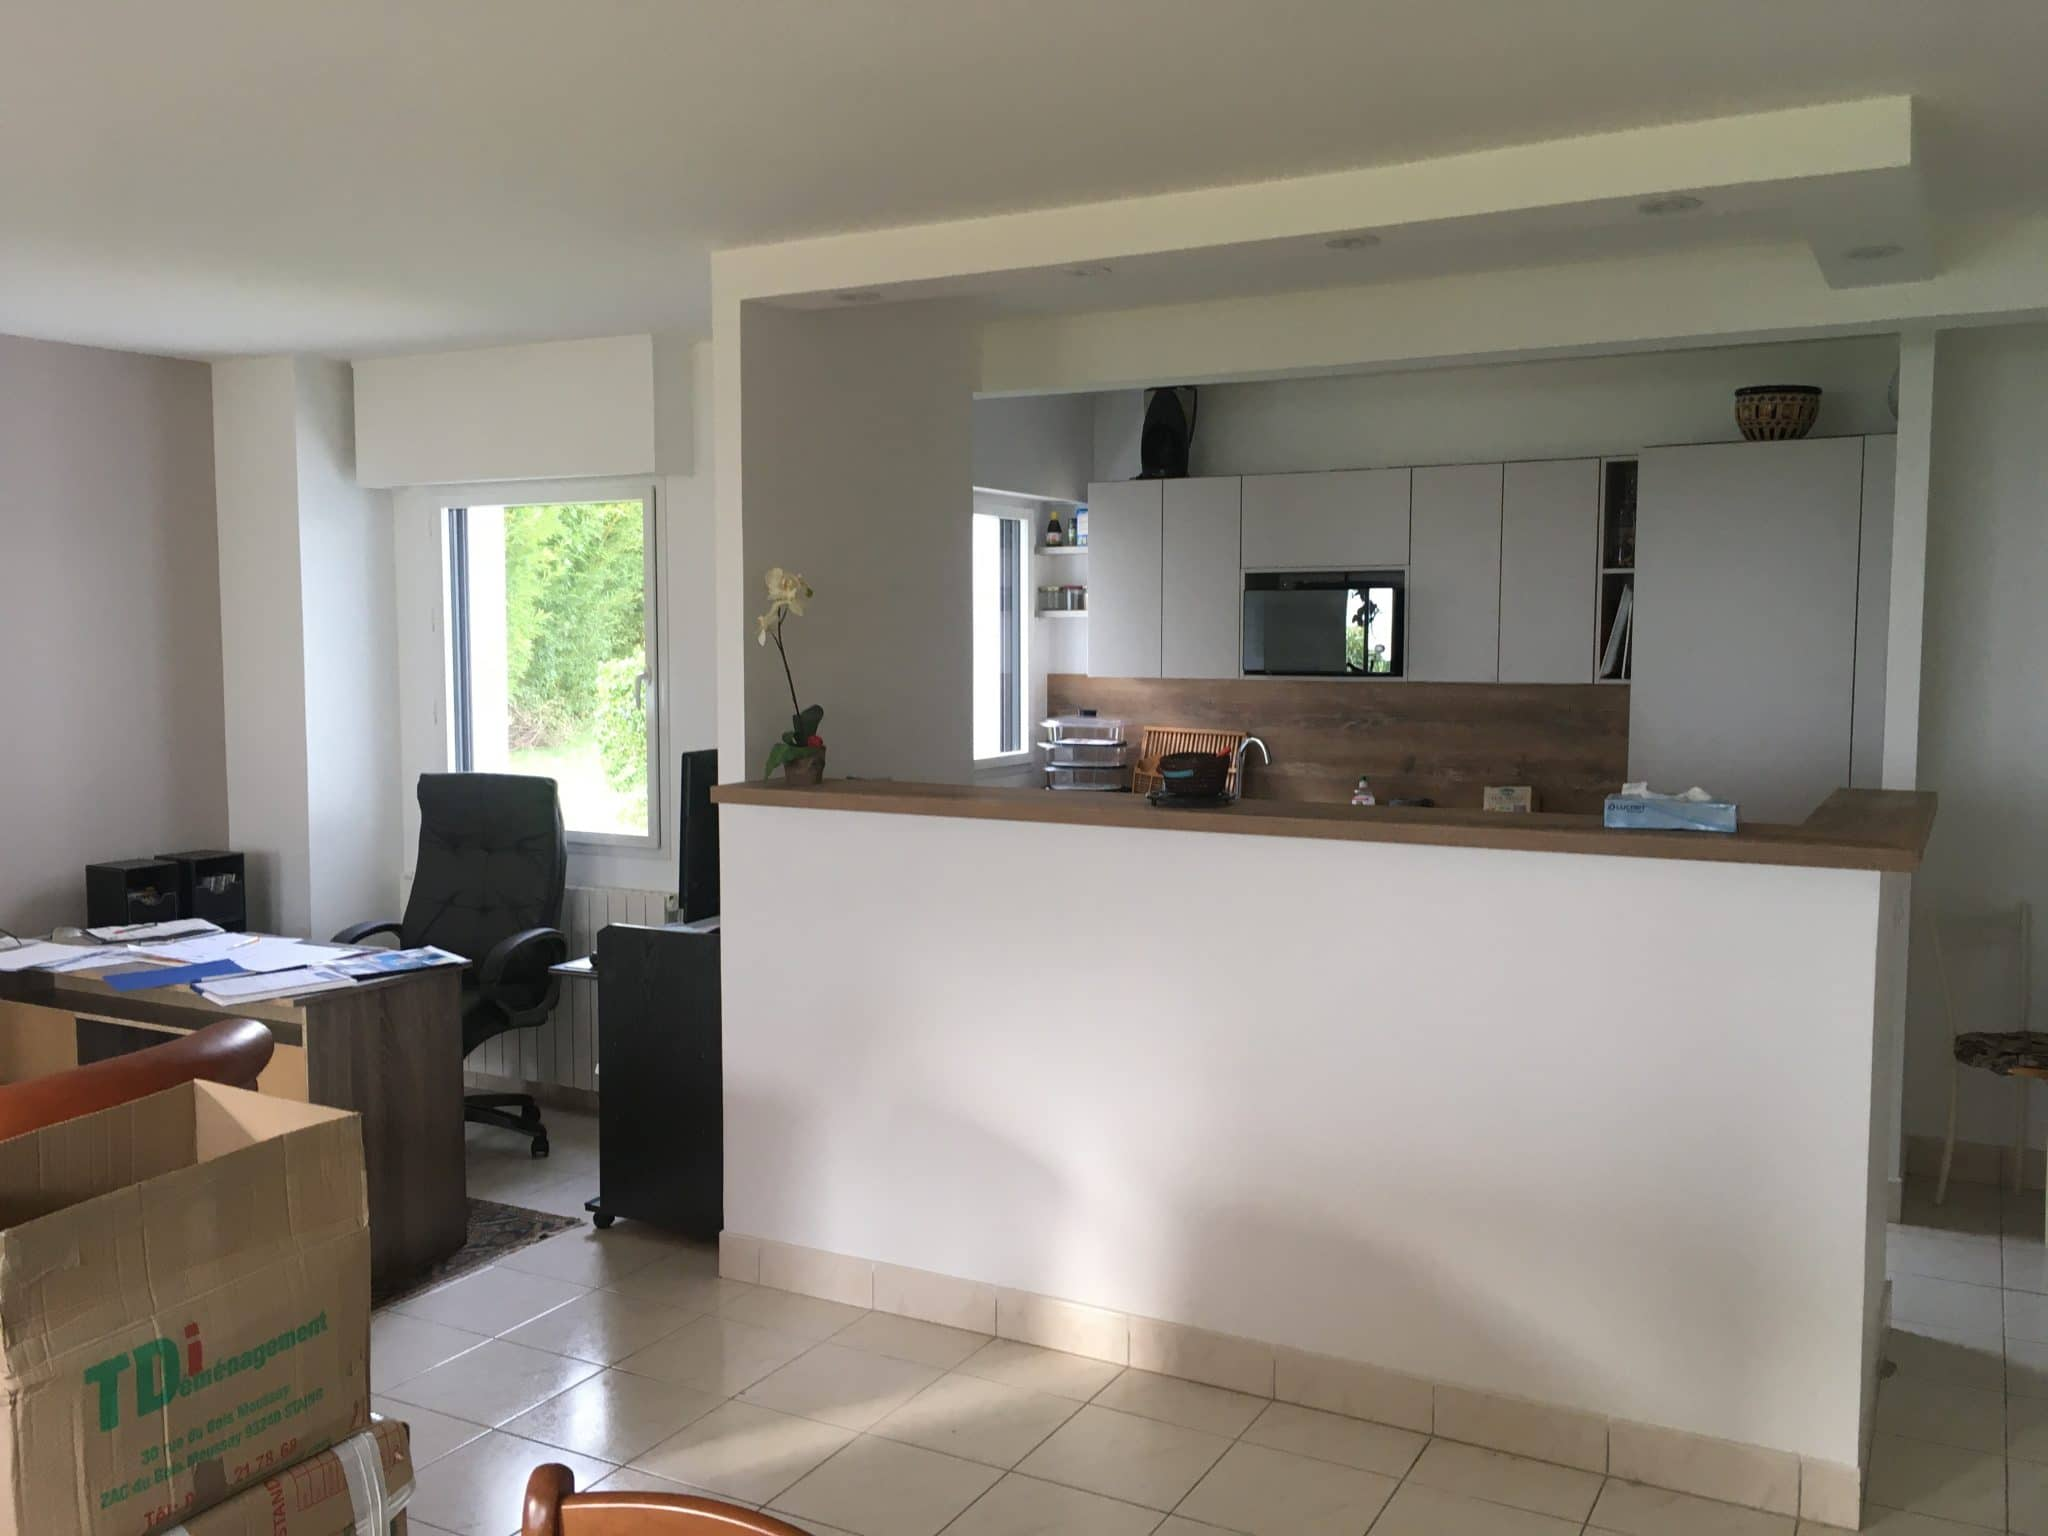 Rénovation d'appartement à Vannes (56)